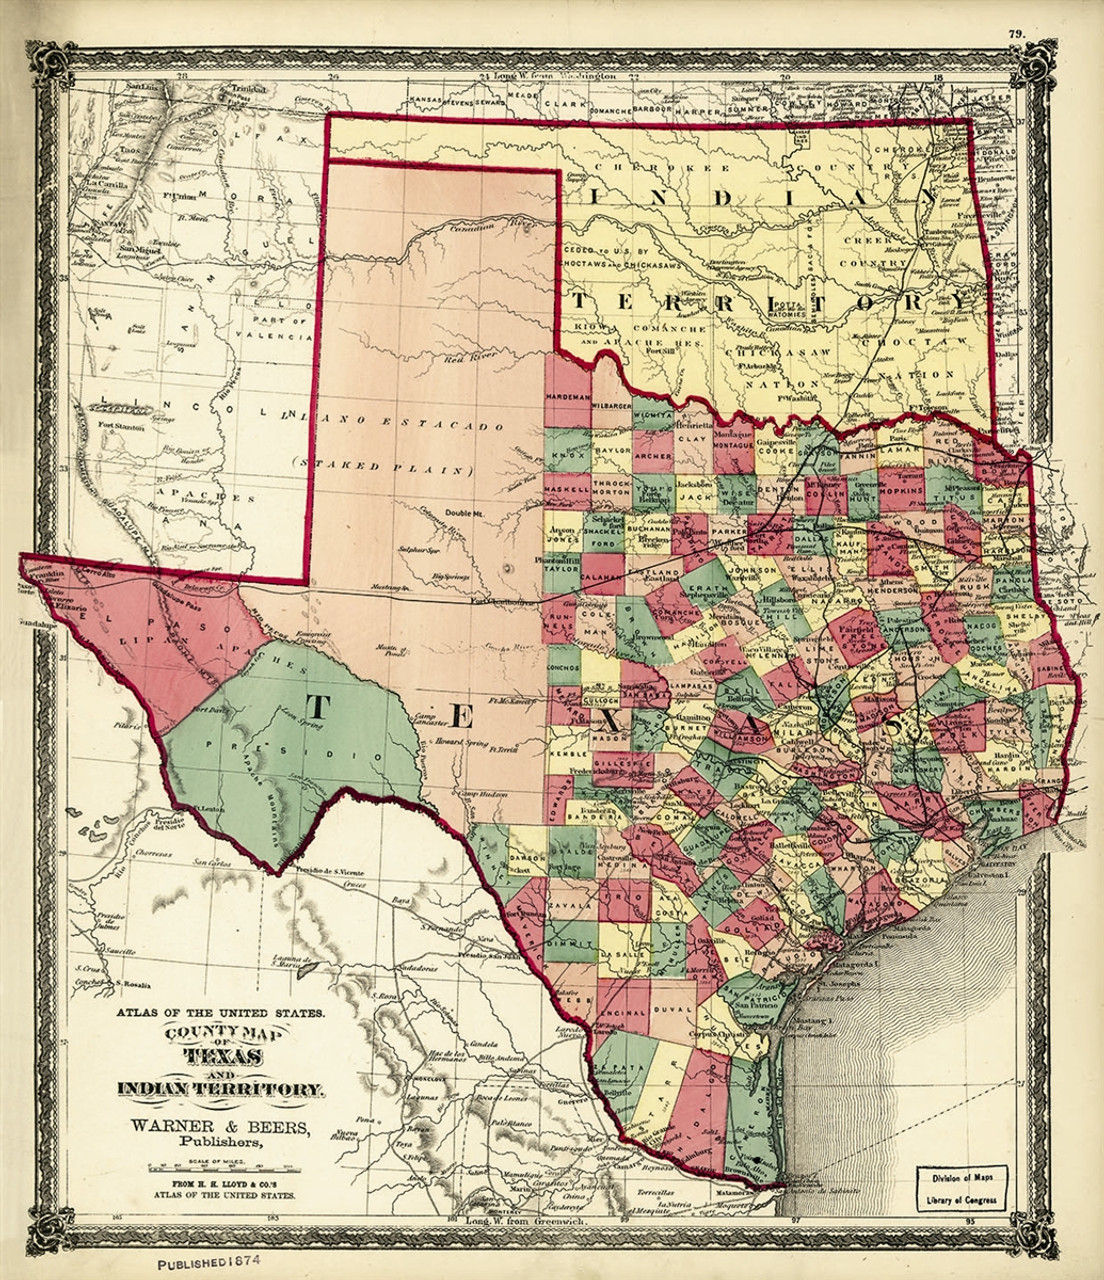 Besides, it also shares international border with mexico in the south and coastline along the mexico gulf. 1874 County Map Of Texas And Indian Territory American Art Publishing